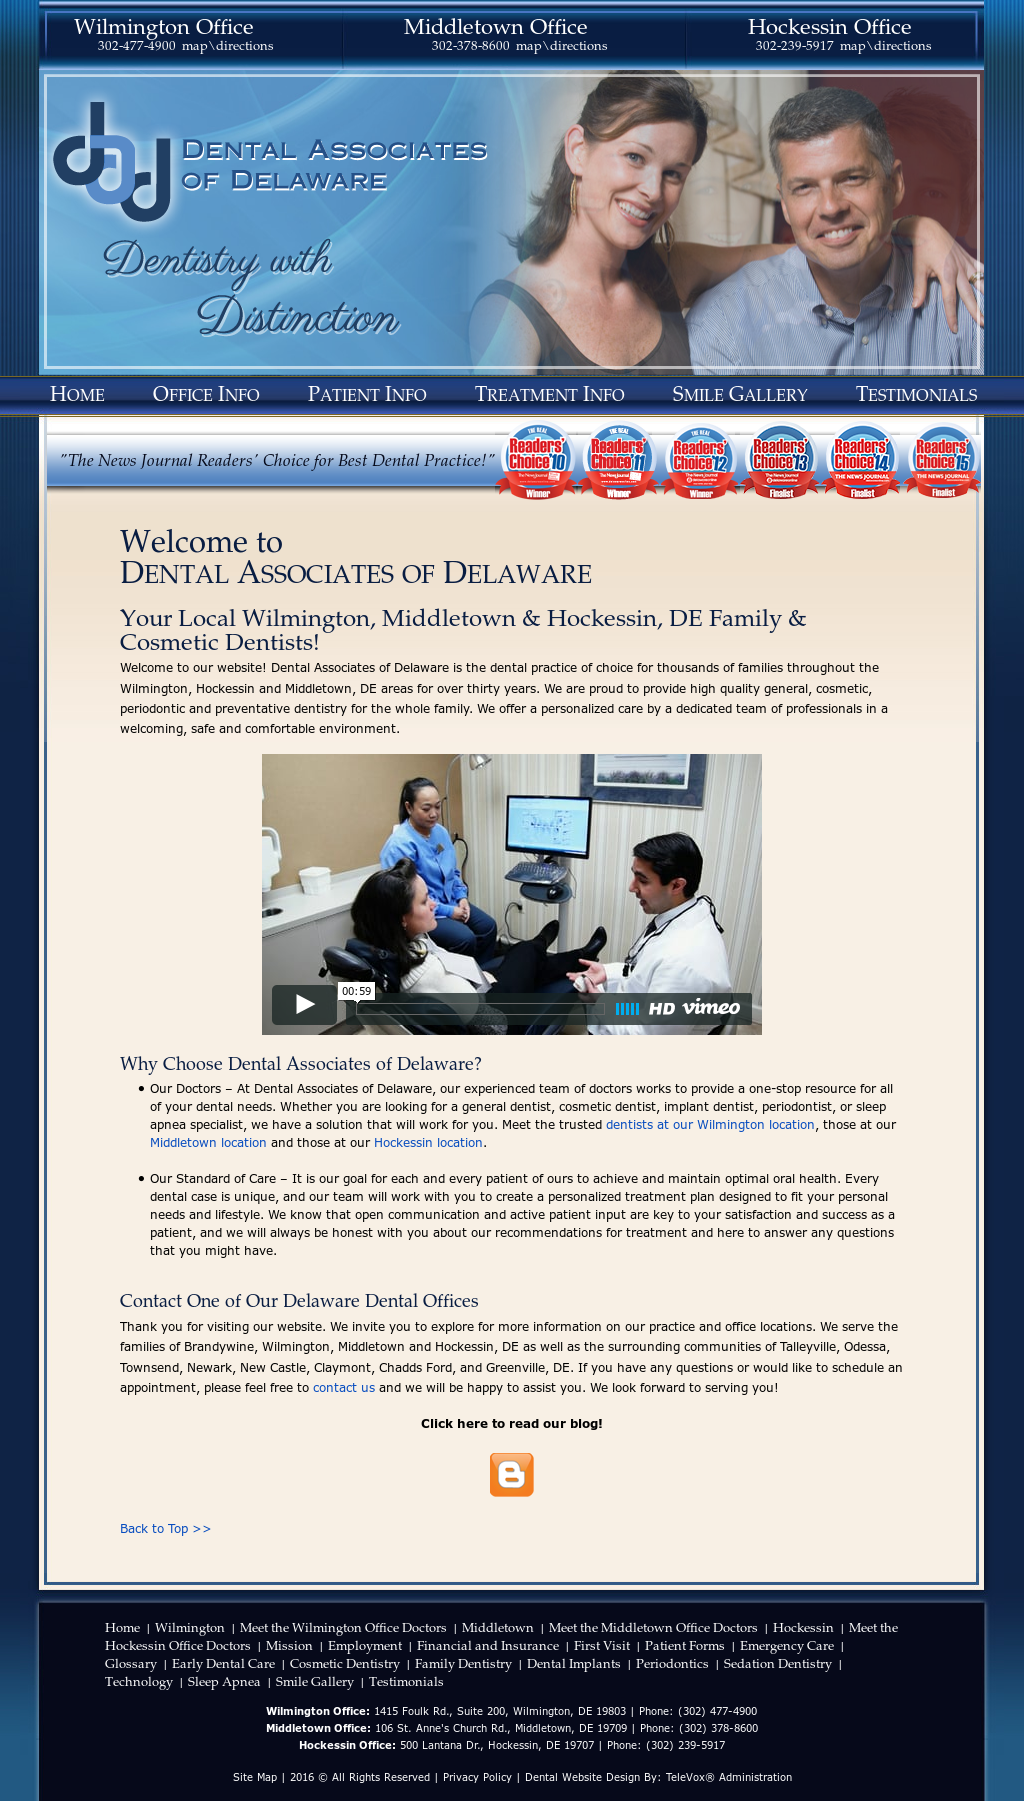 Dental Associates of Delaware Competitors, Revenue and